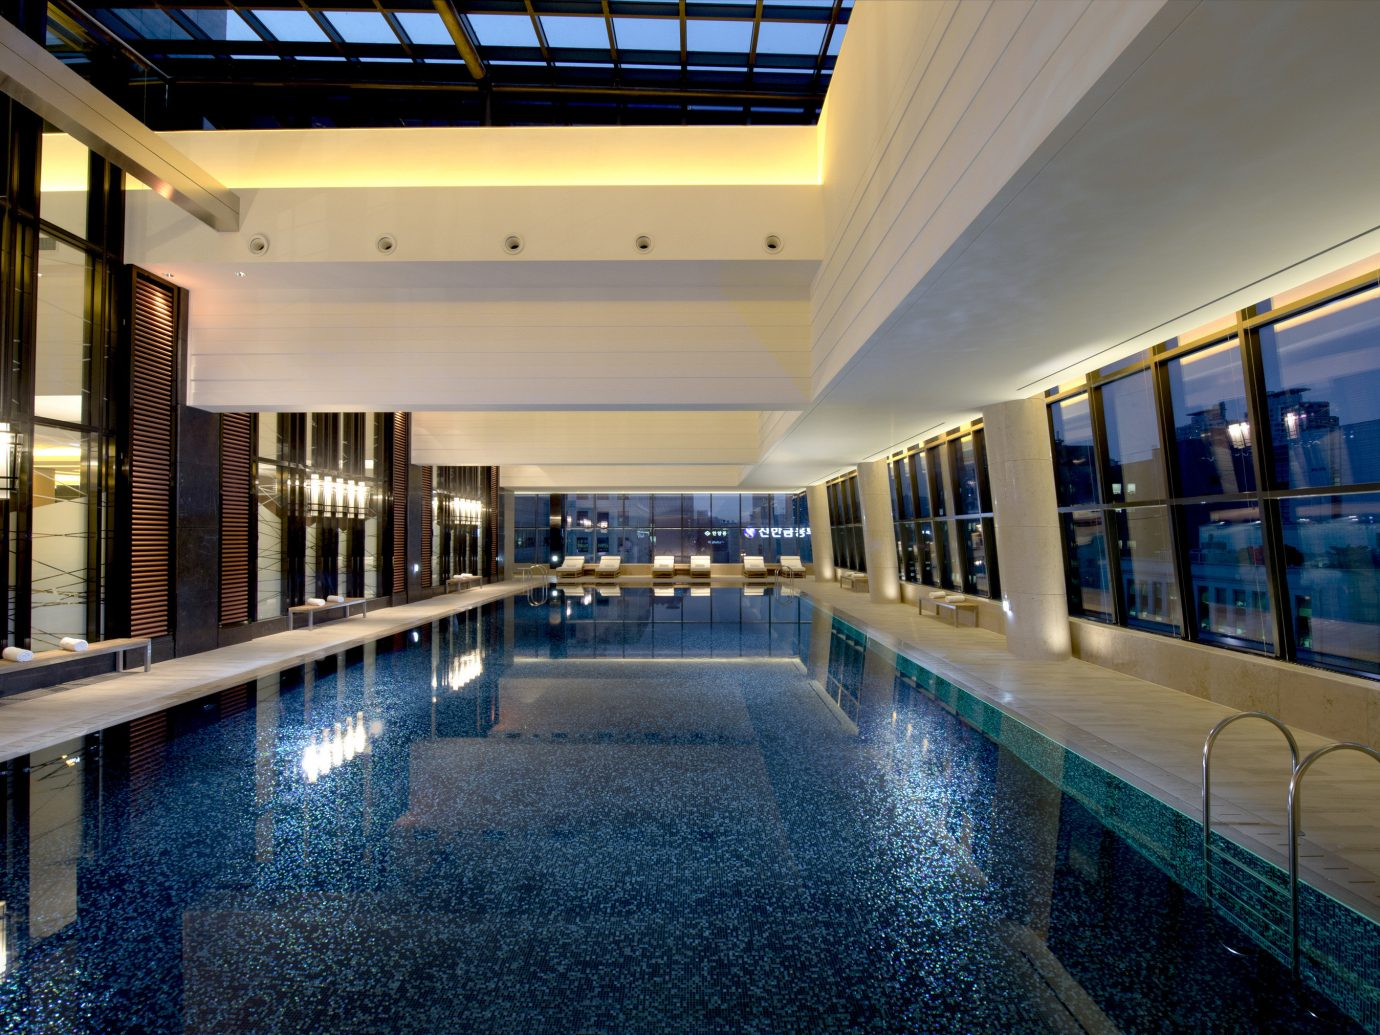 Hotels Luxury Travel indoor floor property ceiling swimming pool estate condominium Lobby real estate apartment reflection interior design leisure hotel daylighting Resort leisure centre water amenity window train long